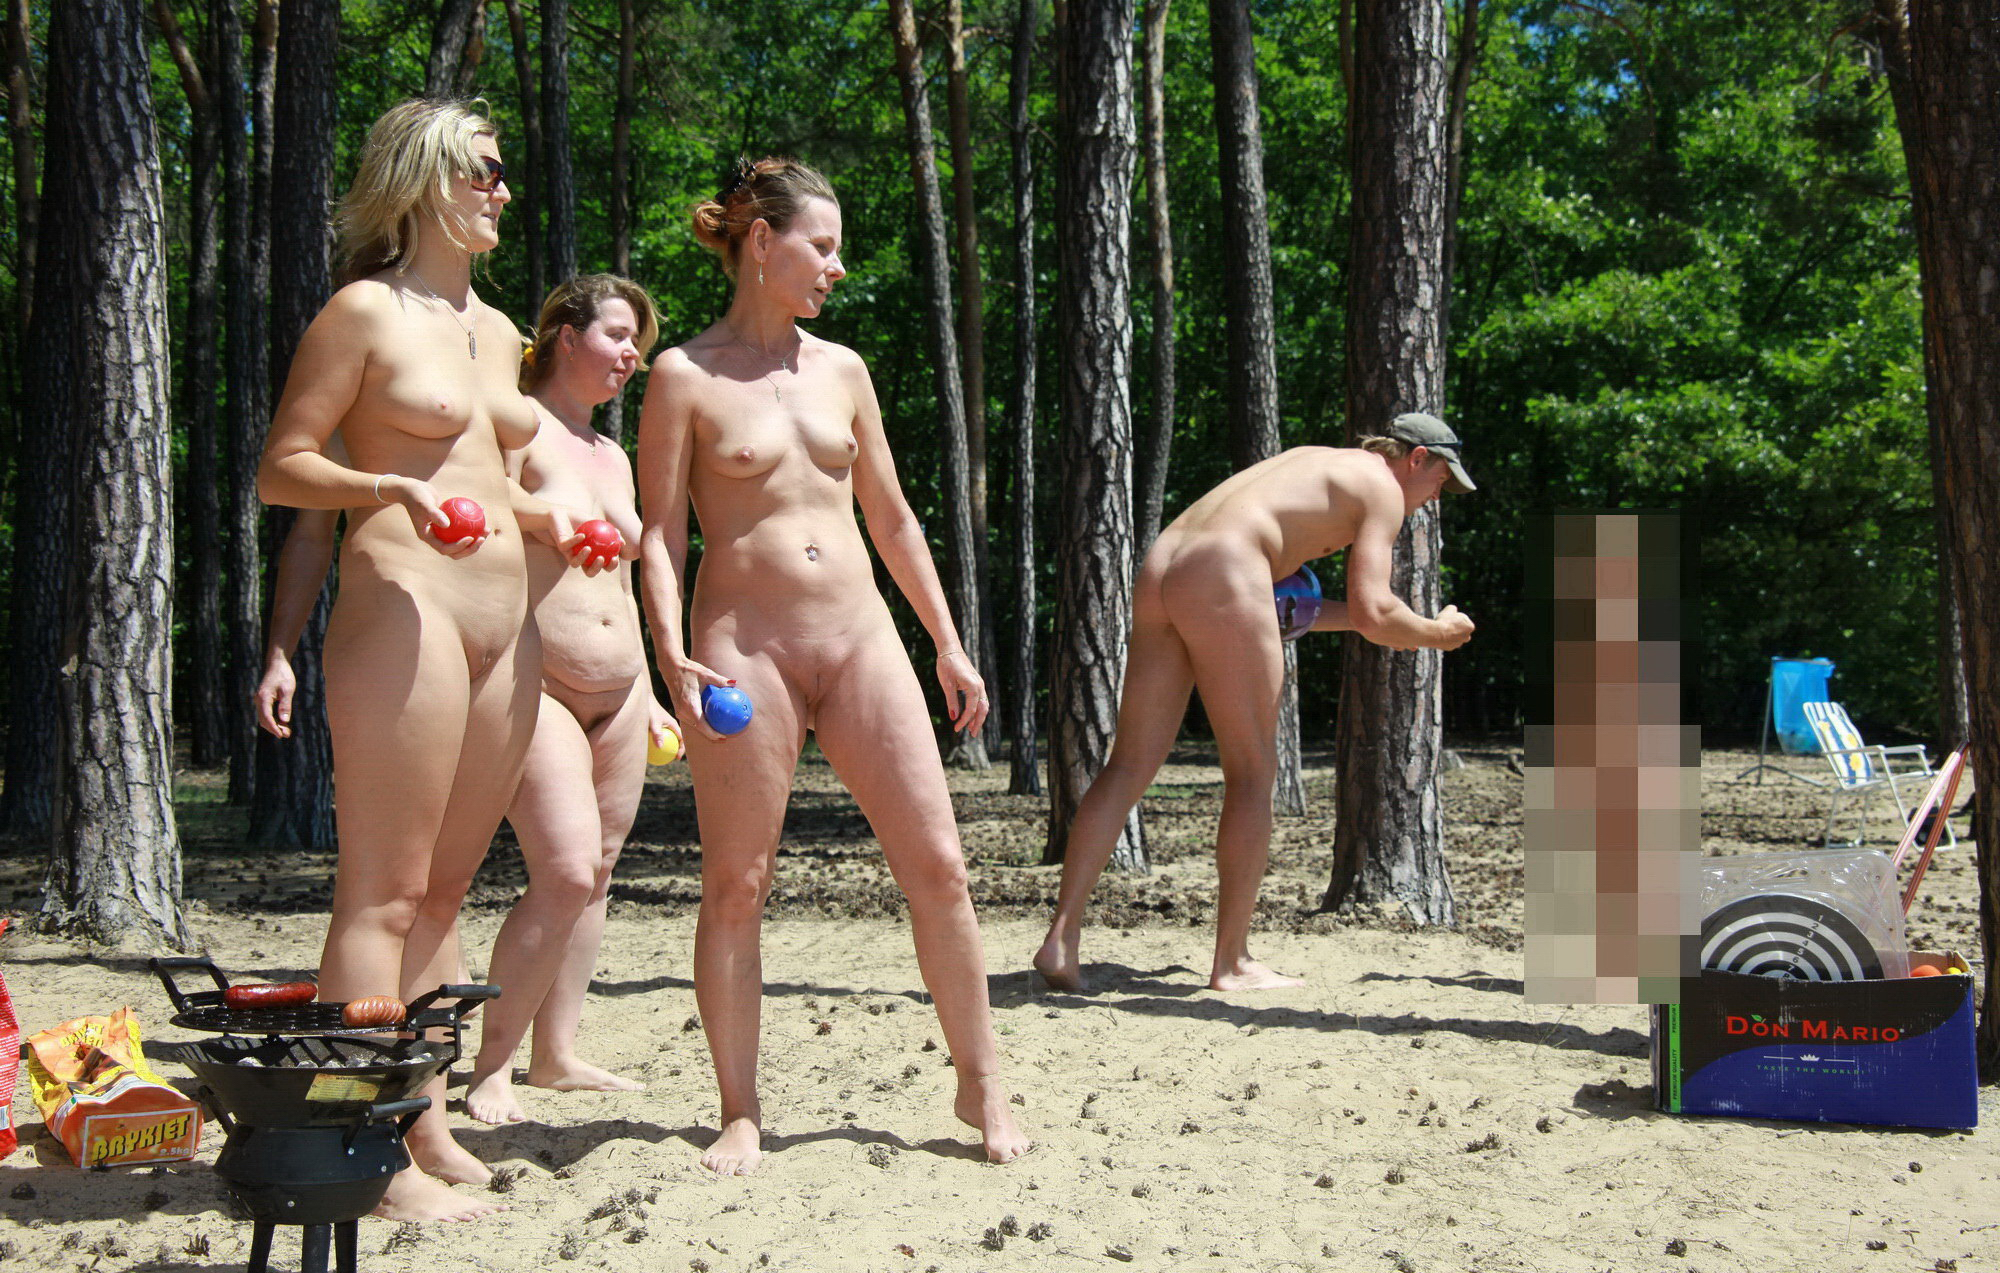 https://voyeurpapa.com/wp-content/uploads/2016/12/Nudists-family-nude-beach-8.jpg